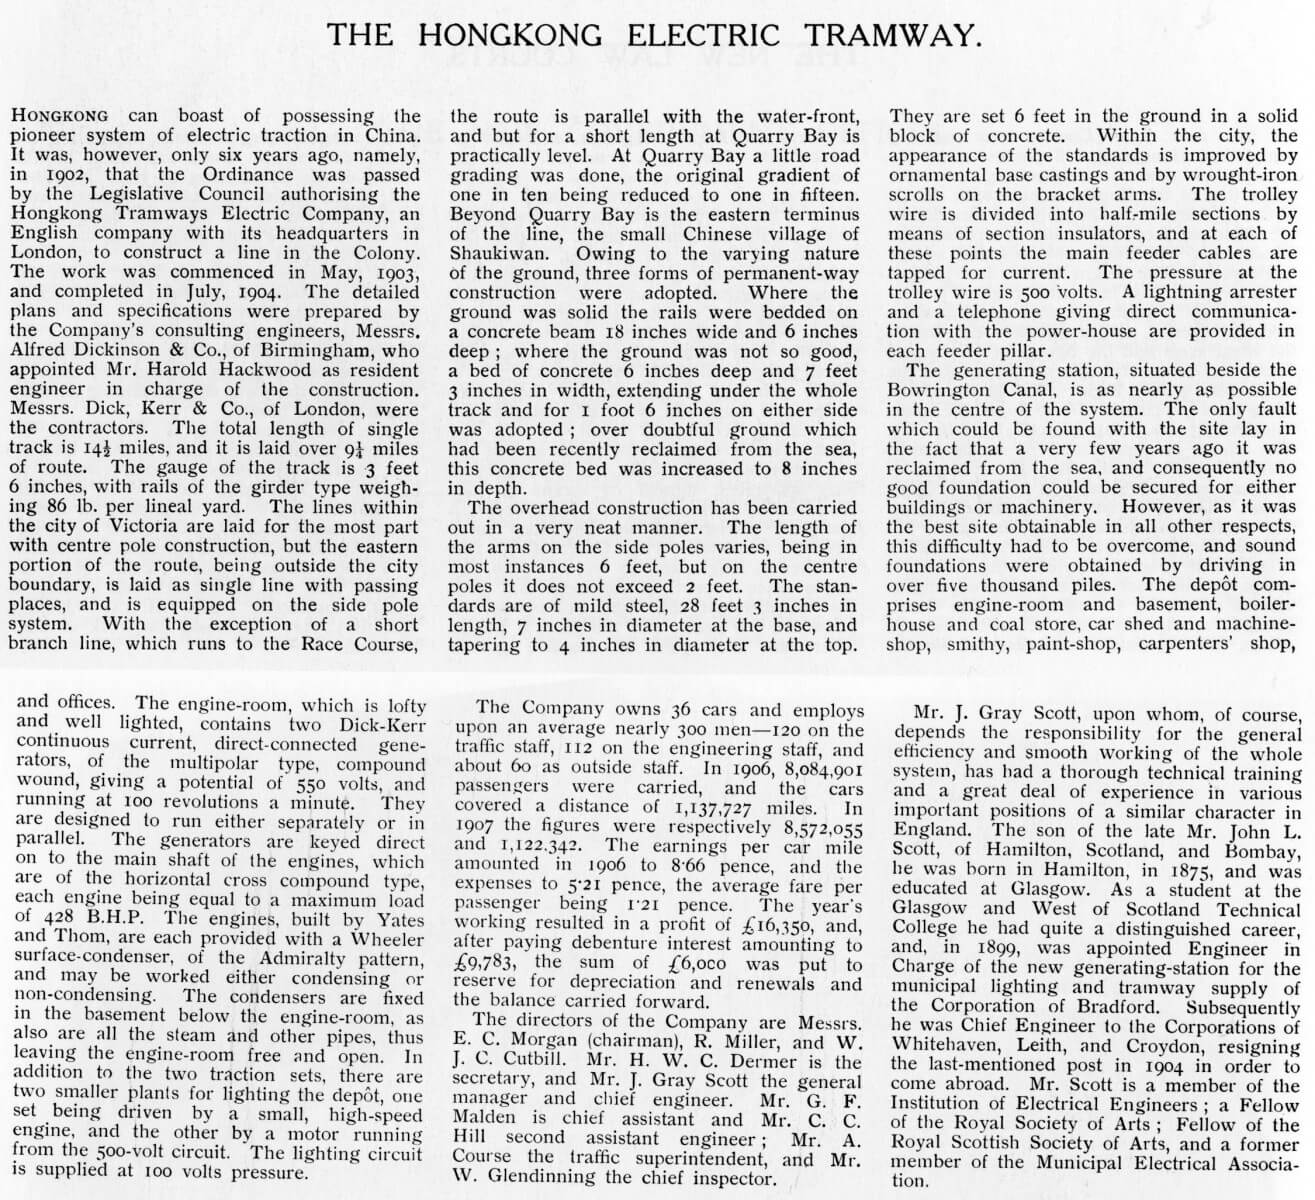 Tramways a Hong_Kong_Electric_Tramway-from_20th_Century_Impressions_book